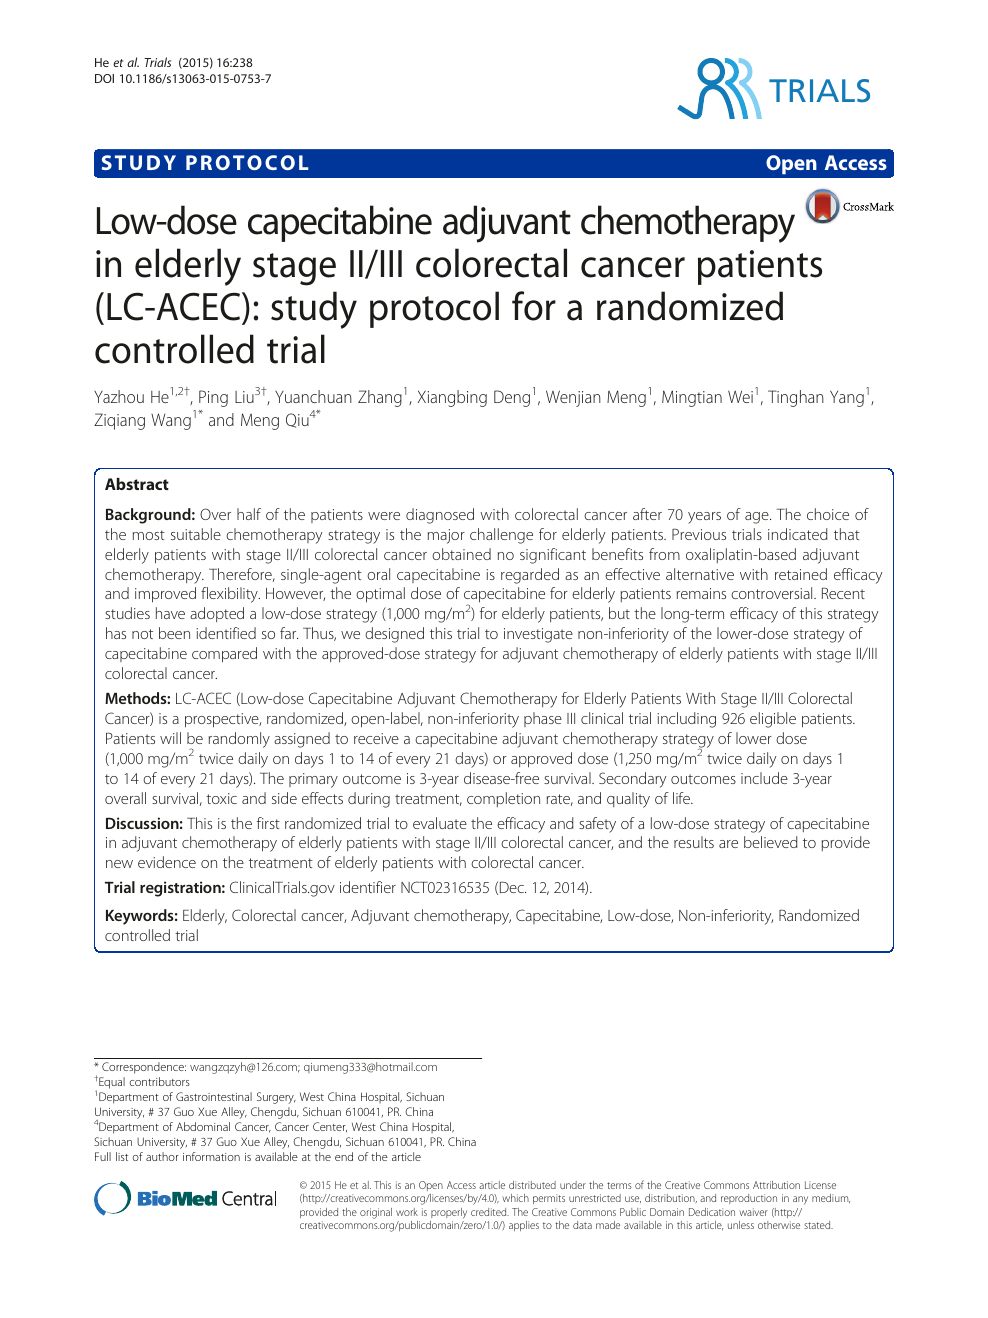 Low Dose Capecitabine Adjuvant Chemotherapy In Elderly Stage Ii Iii Colorectal Cancer Patients Lc Acec Study Protocol For A Randomized Controlled Trial Topic Of Research Paper In Clinical Medicine Download Scholarly Article Pdf And